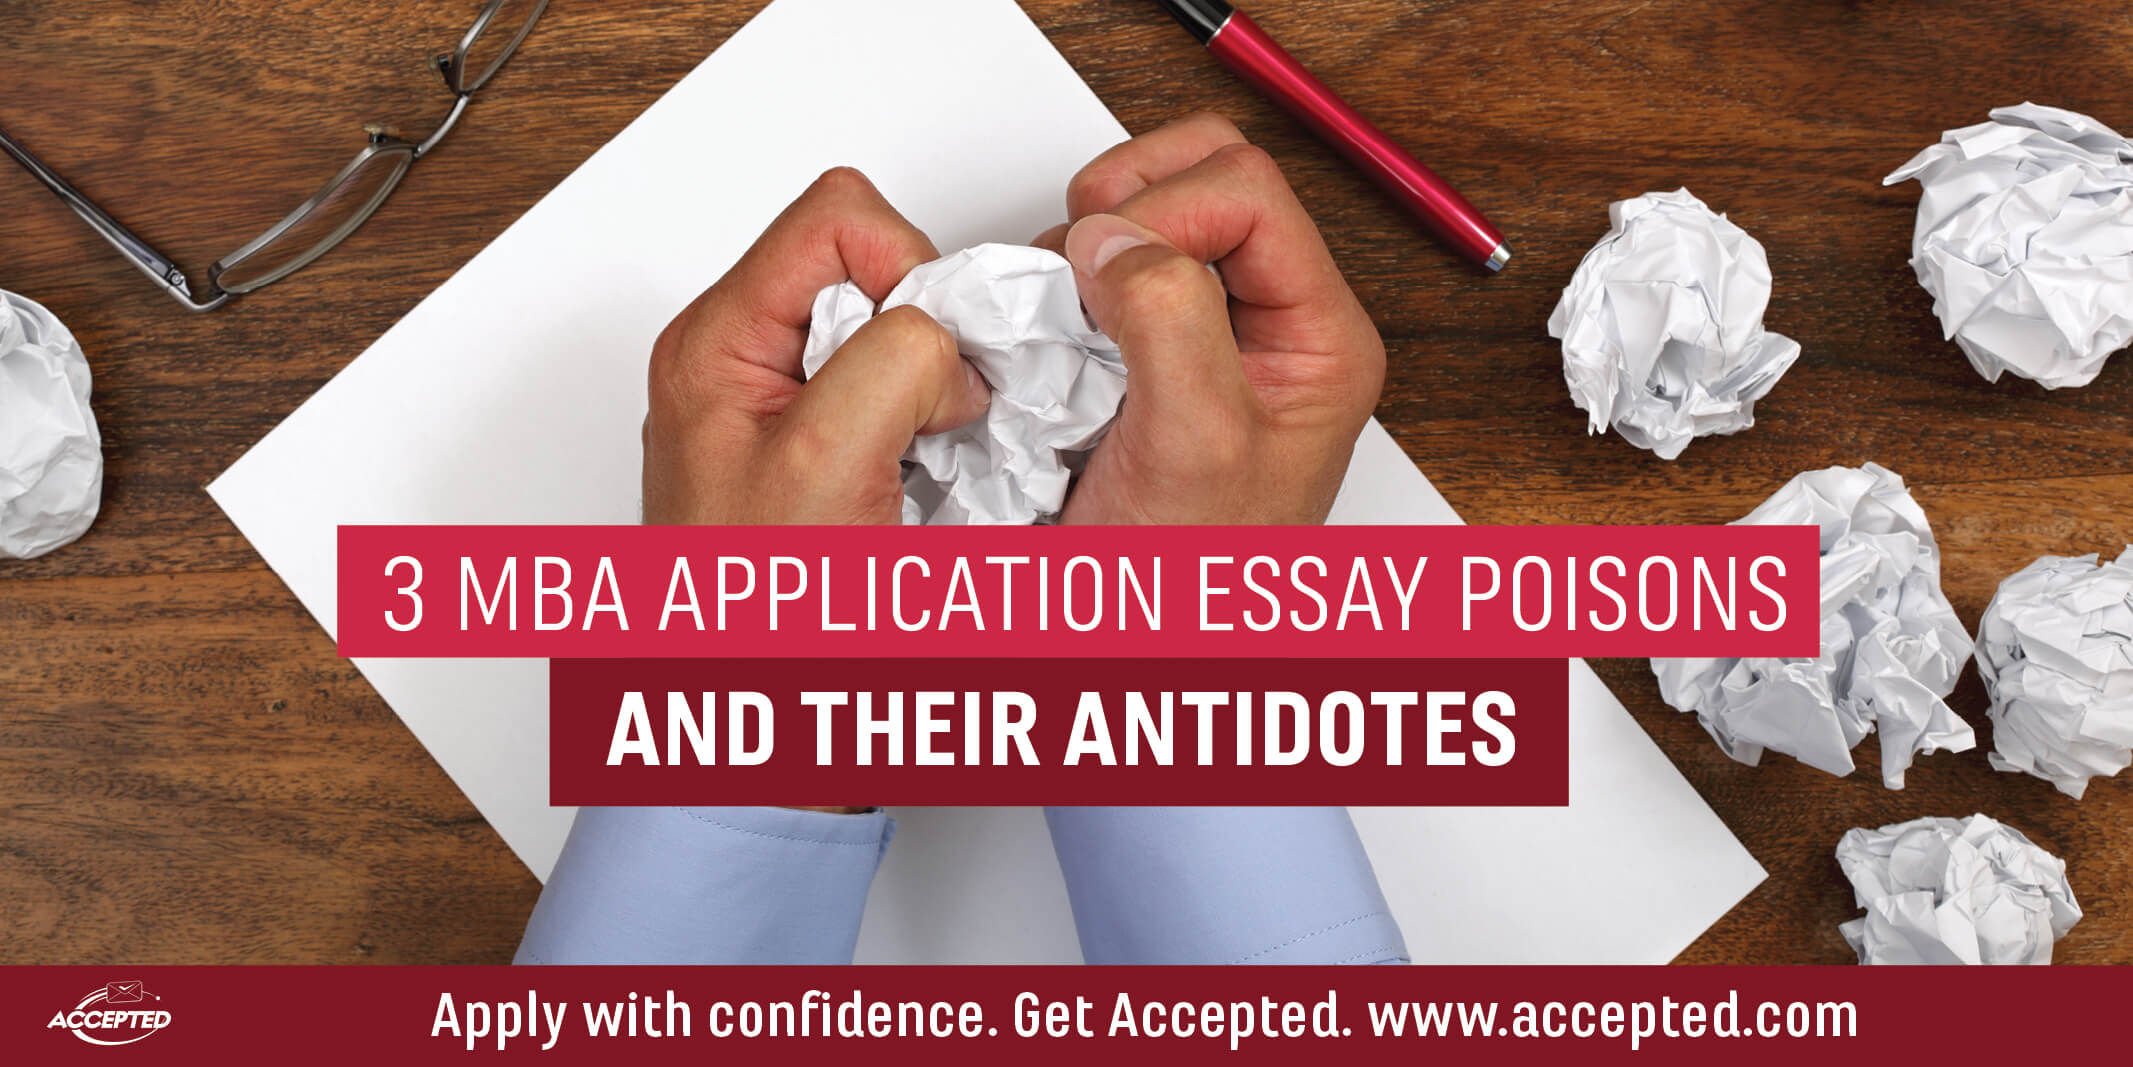 mba application essay tips Mba2016 essays written by lbs we actually aren't asking for a 're-application essay' this year application and mba essays plays a big role in.